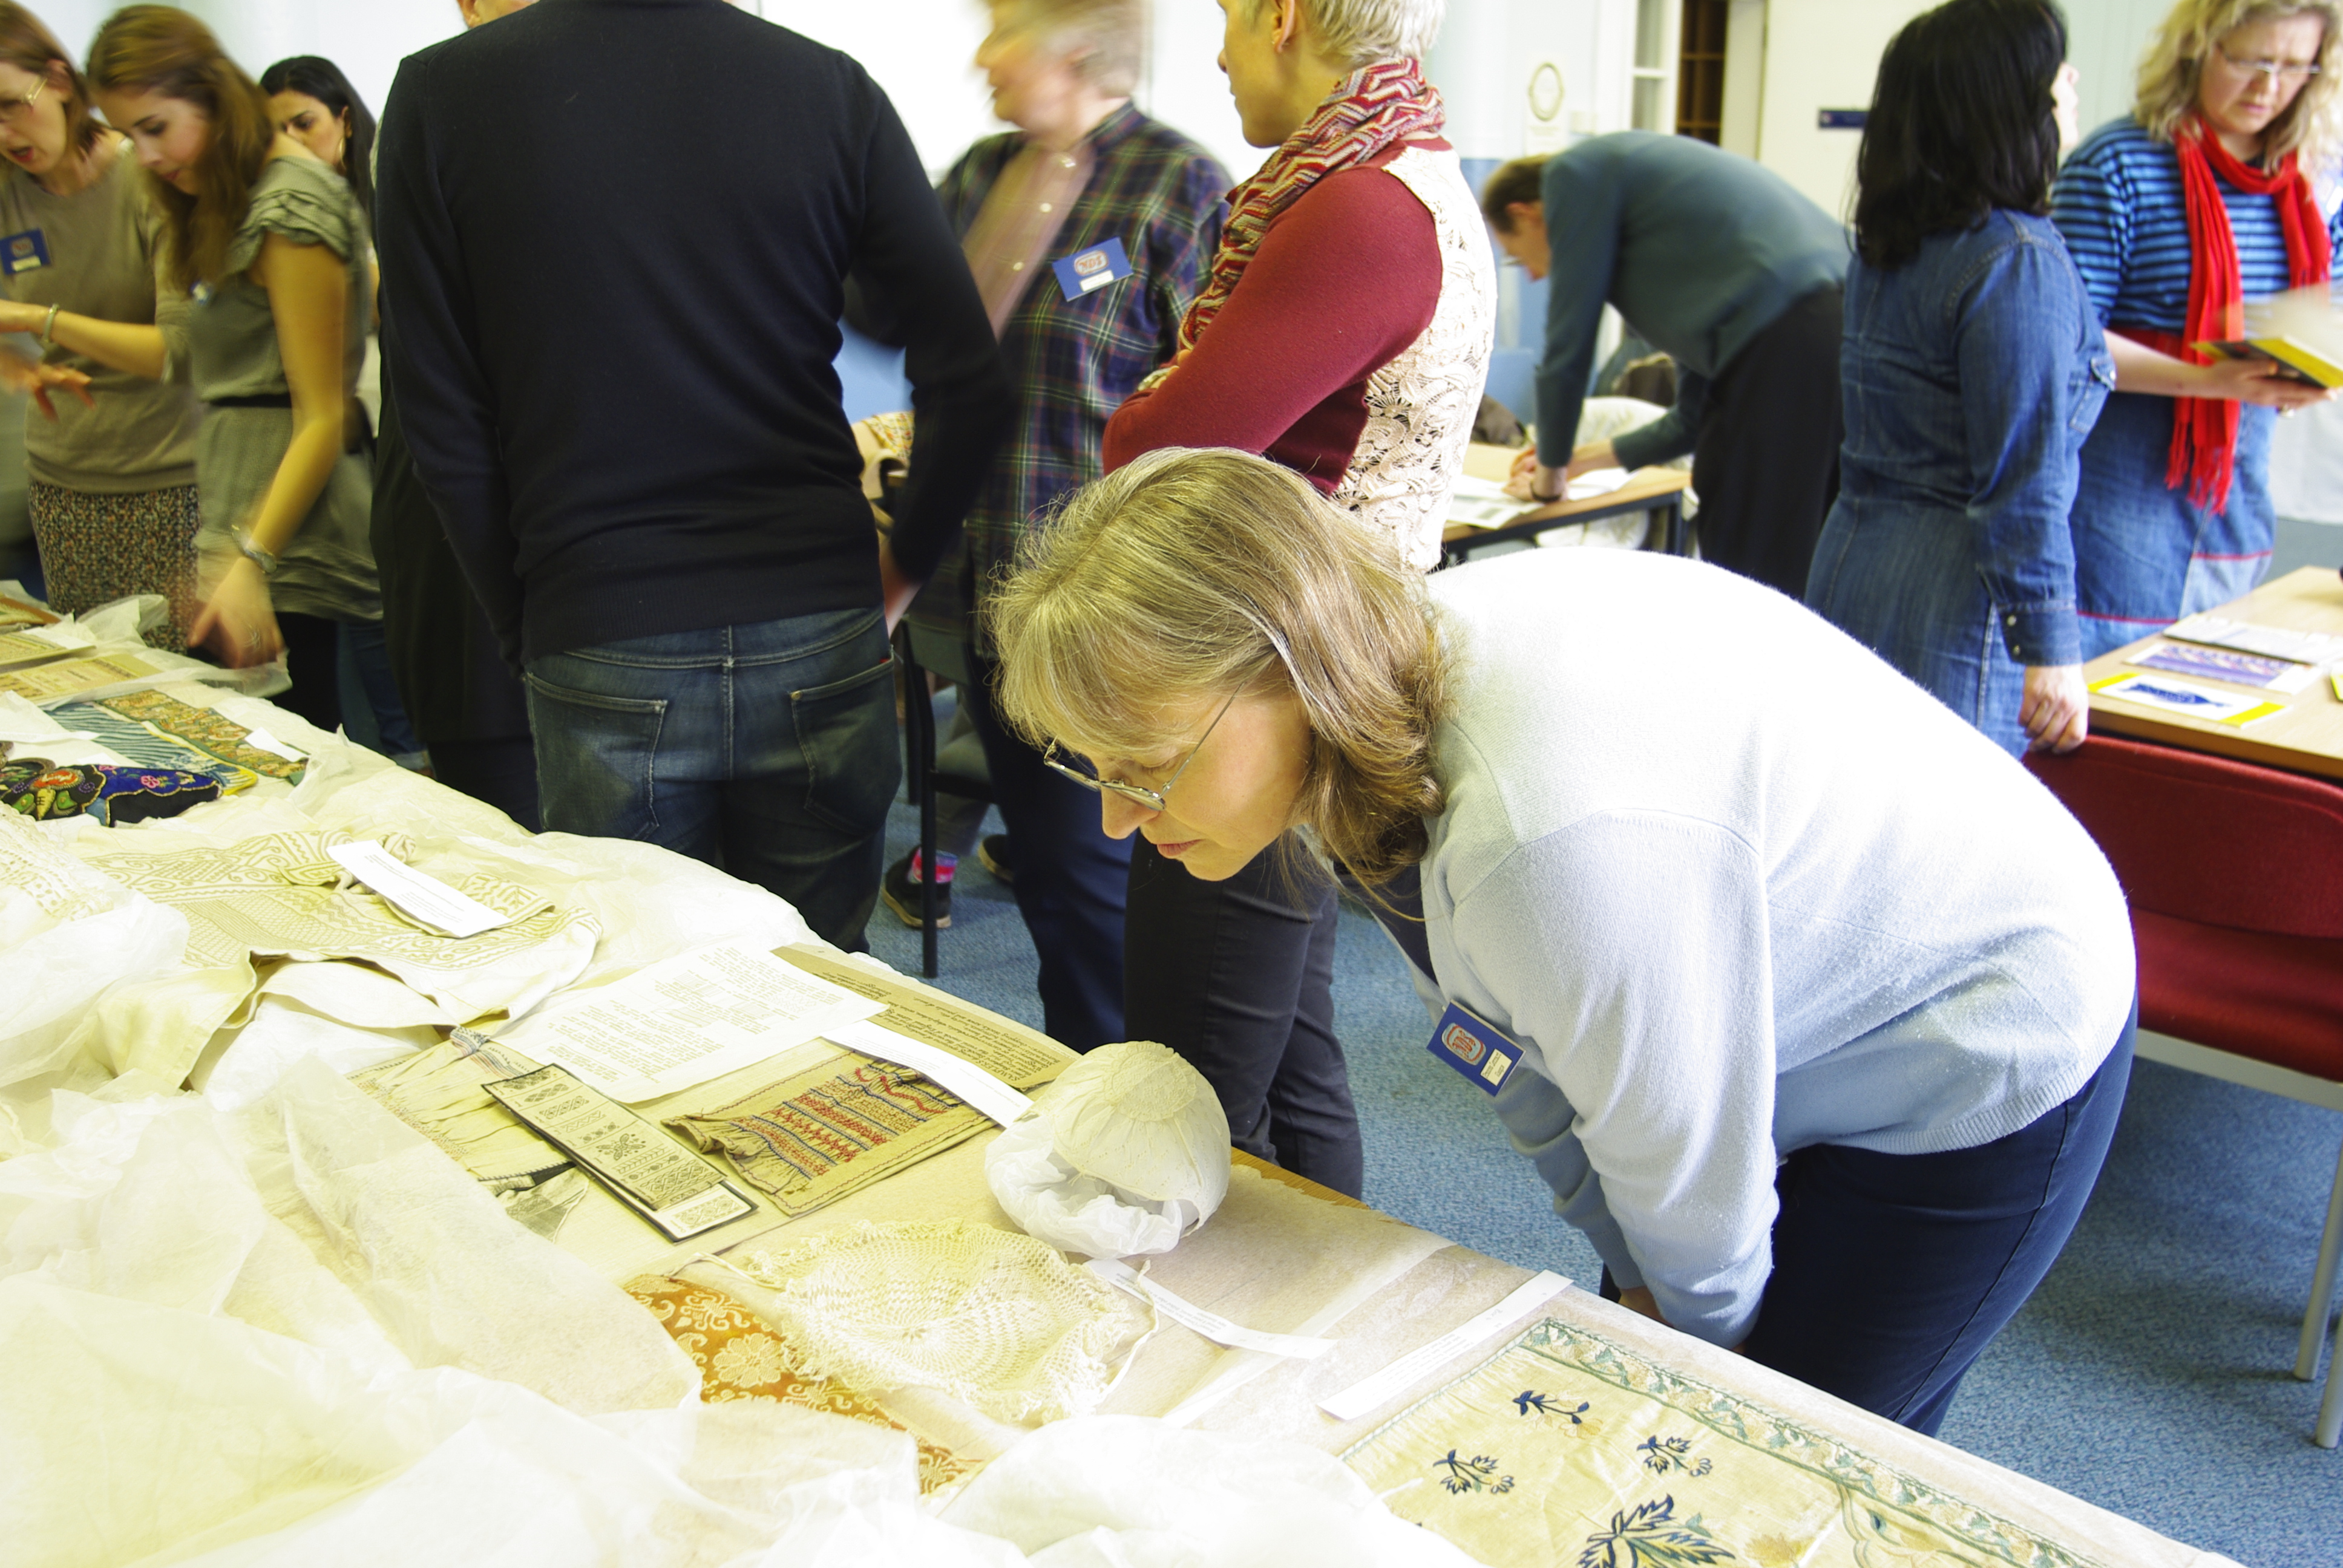 Frances Lennard, senior lecturer in Textile Conservation at the University of Glasgow, inspecting an item from ECA's NDS collection